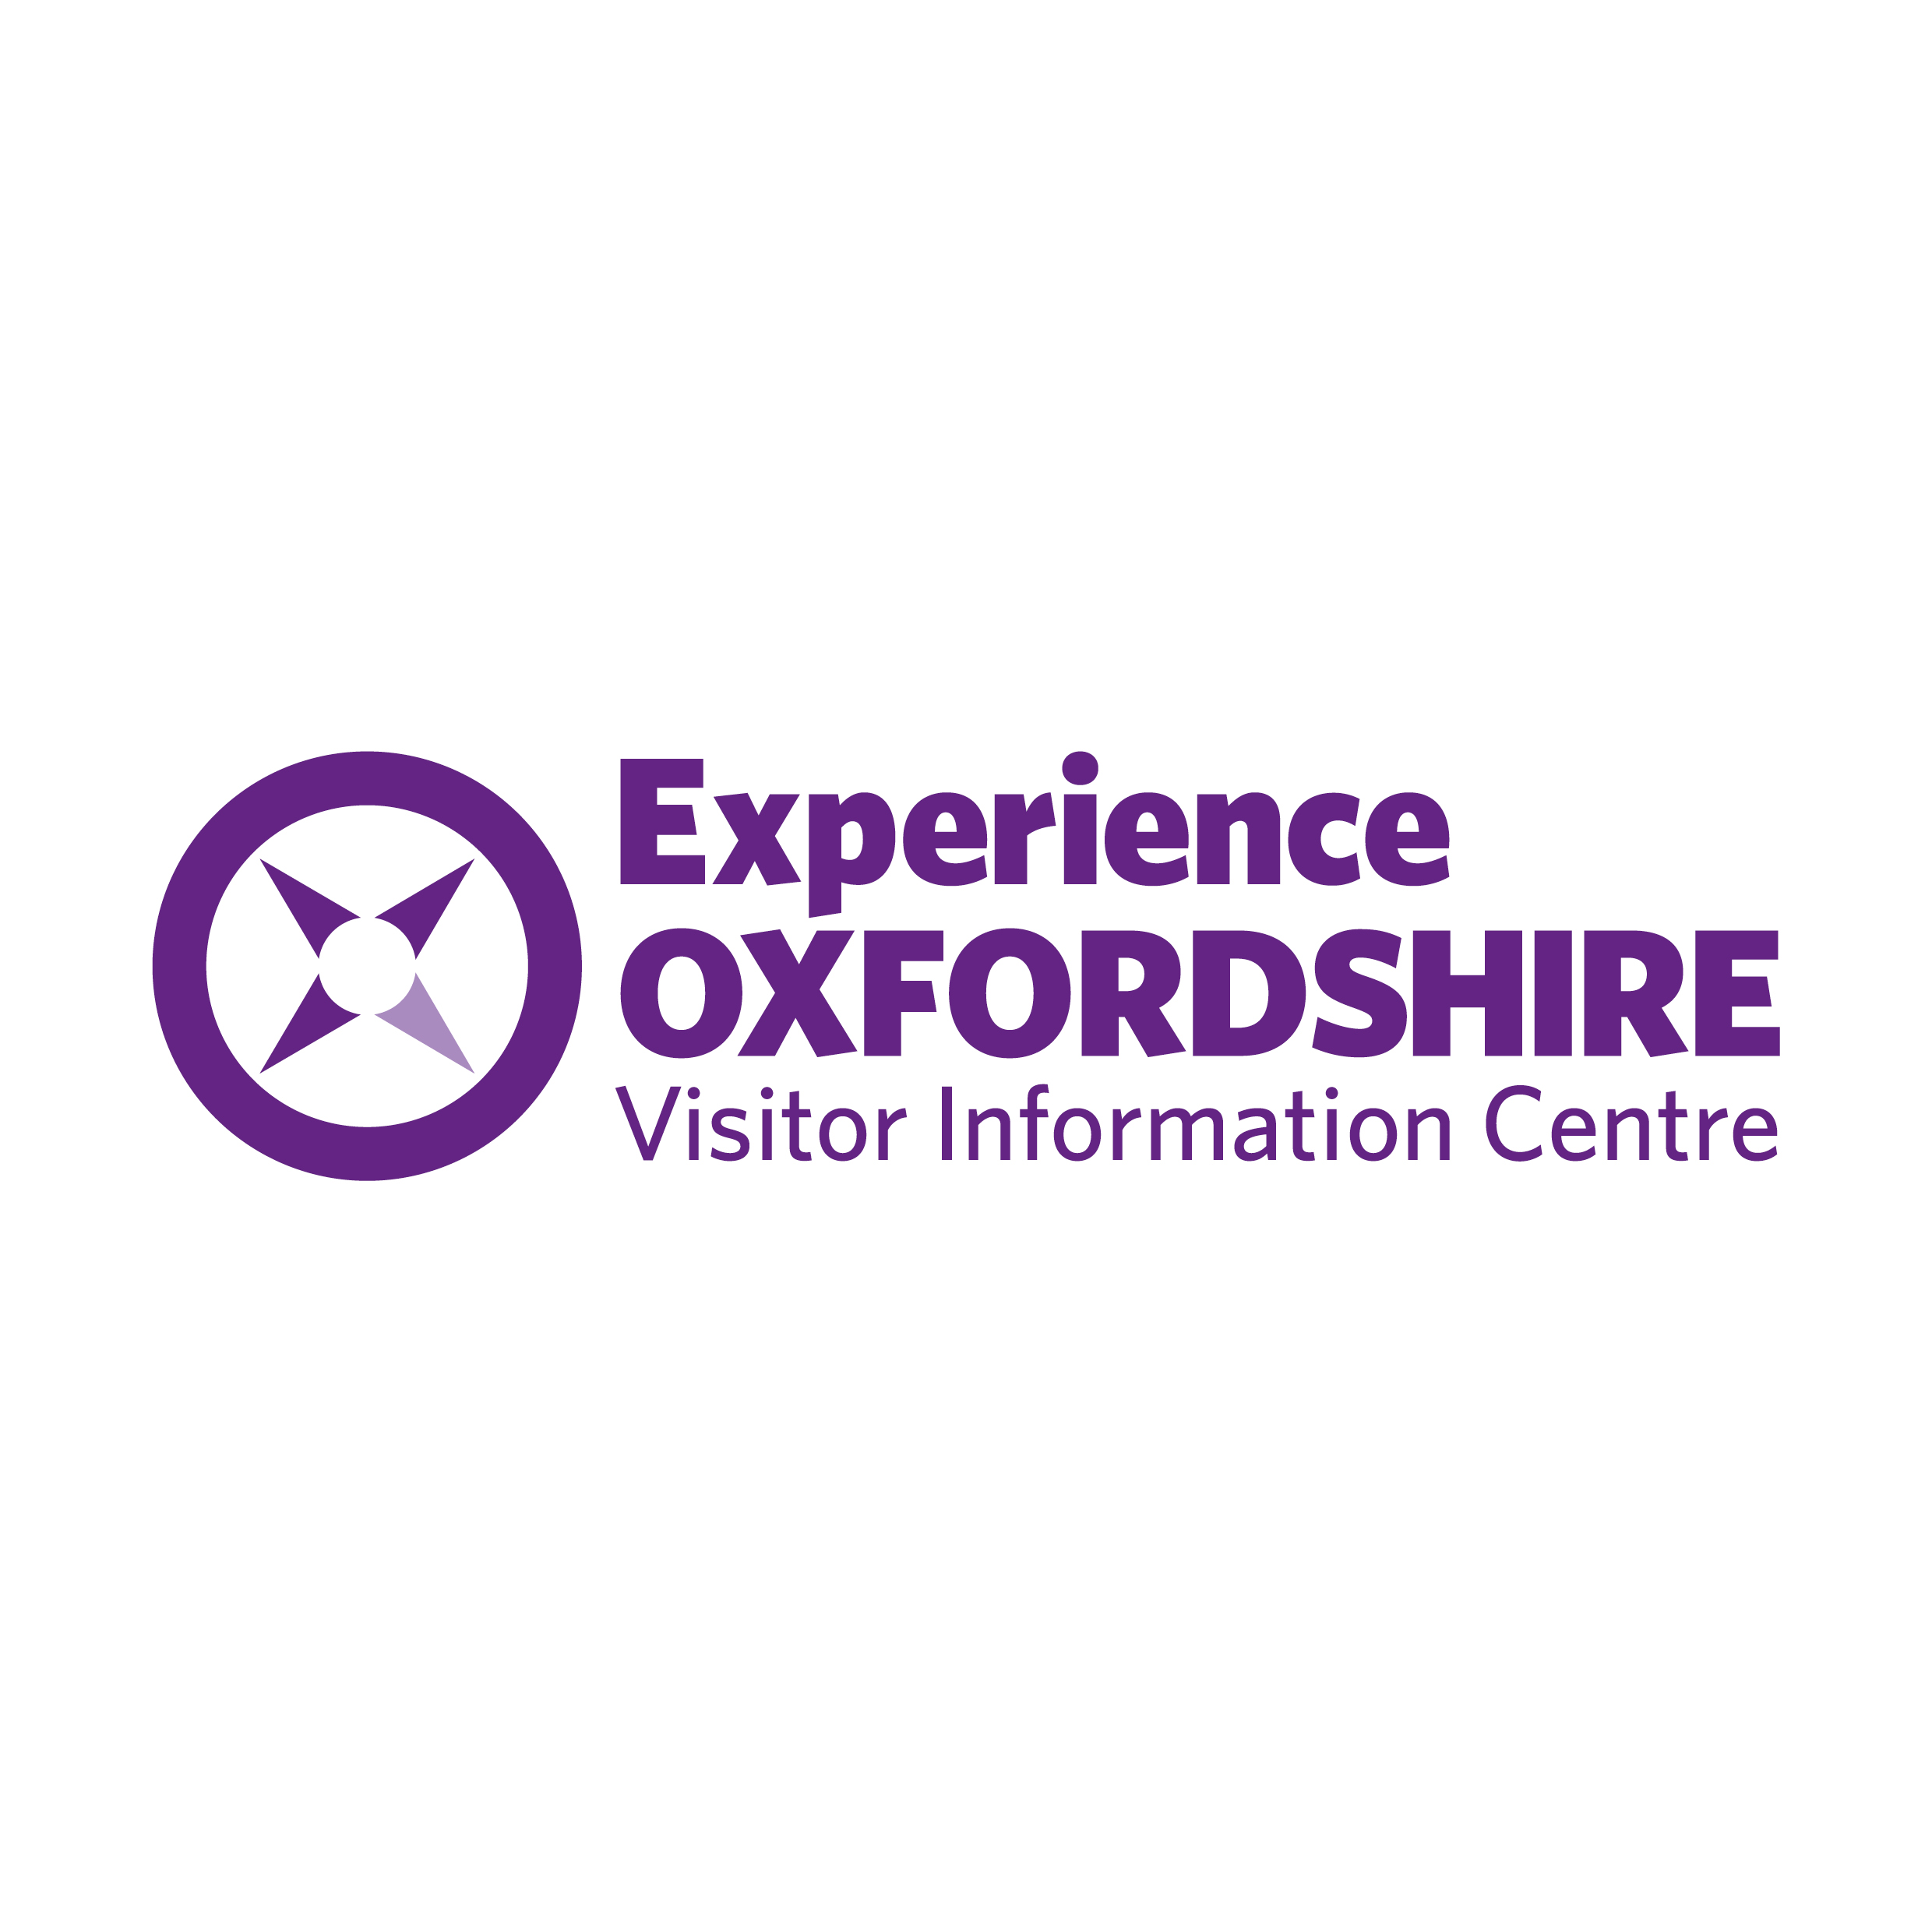 Experience Oxfordshire TIC